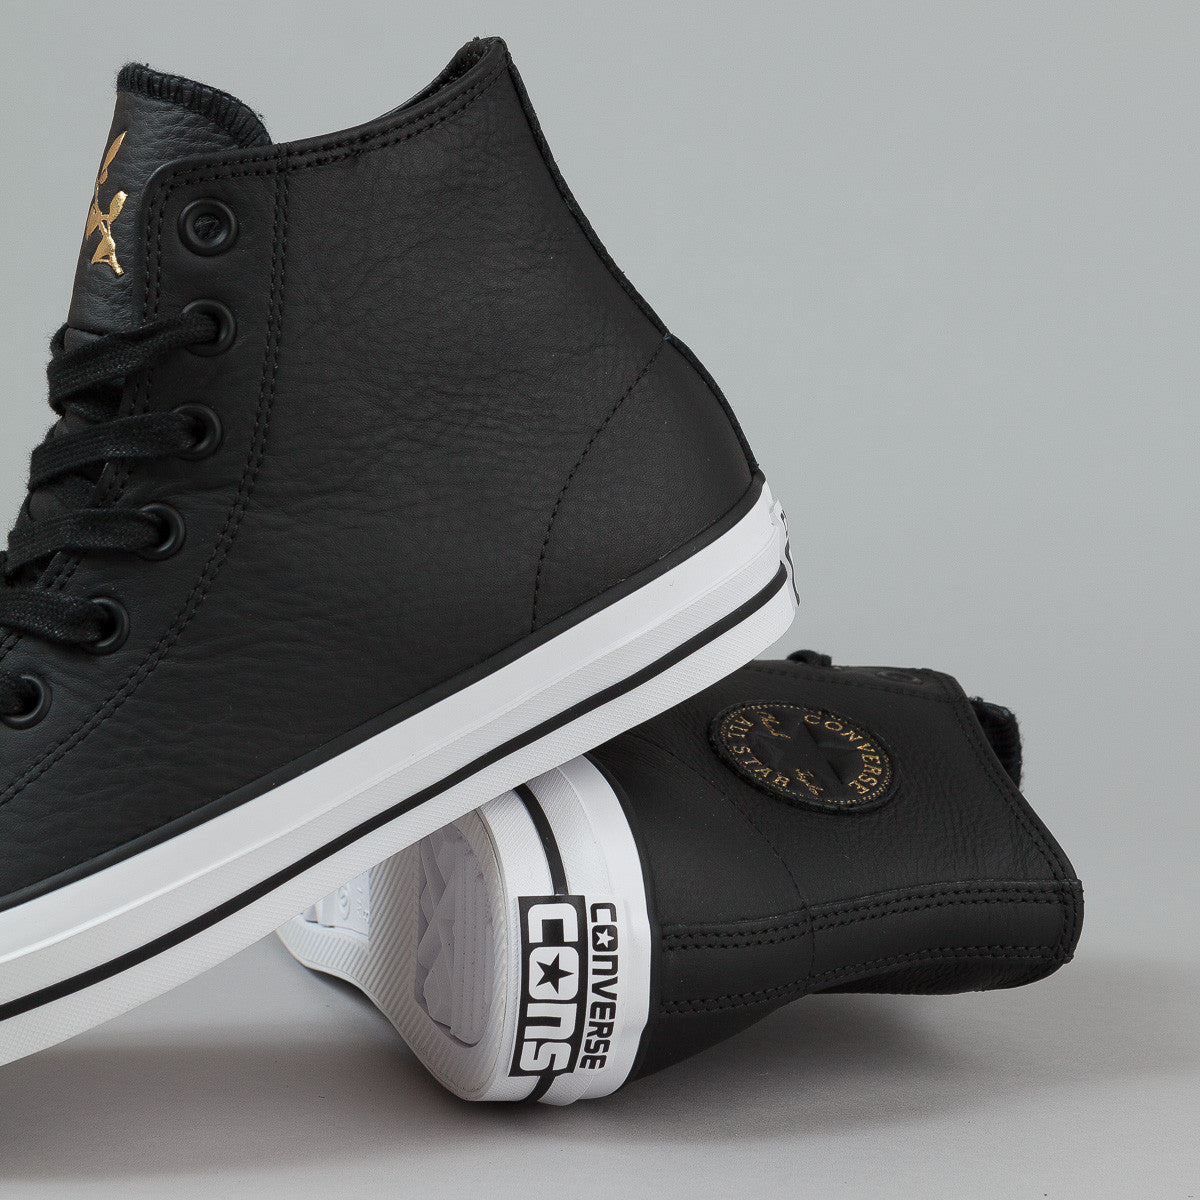 Converse CTAS Pro HI Shoes - Black / Rich Gold / White